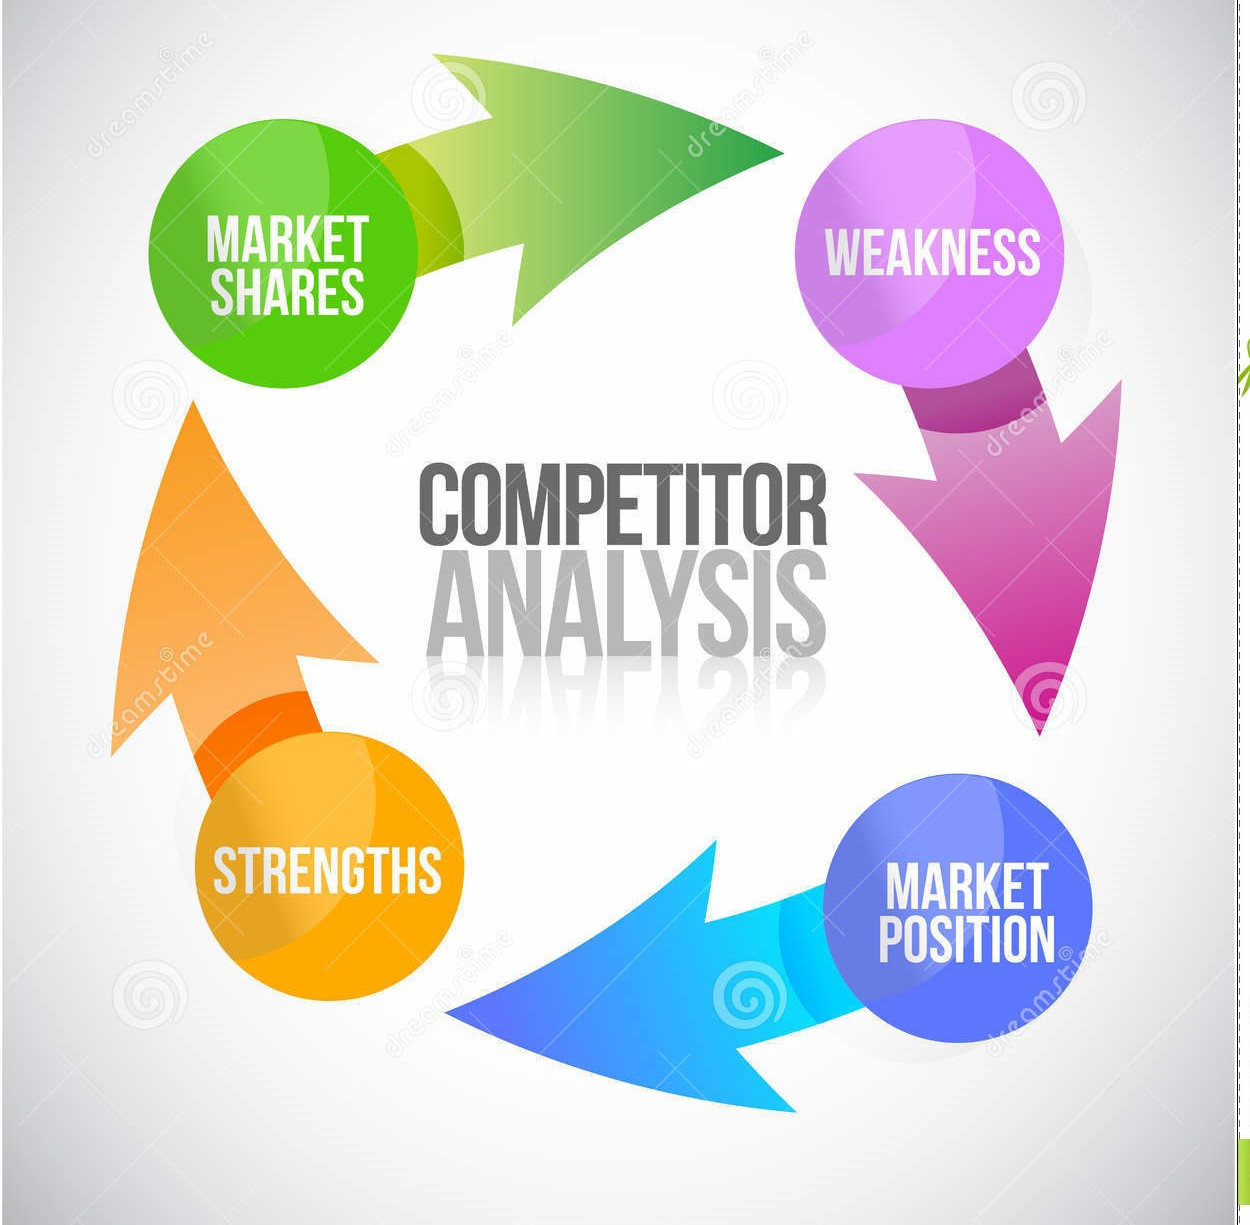 Competitor Analysis i will do  Very Short Time on your website